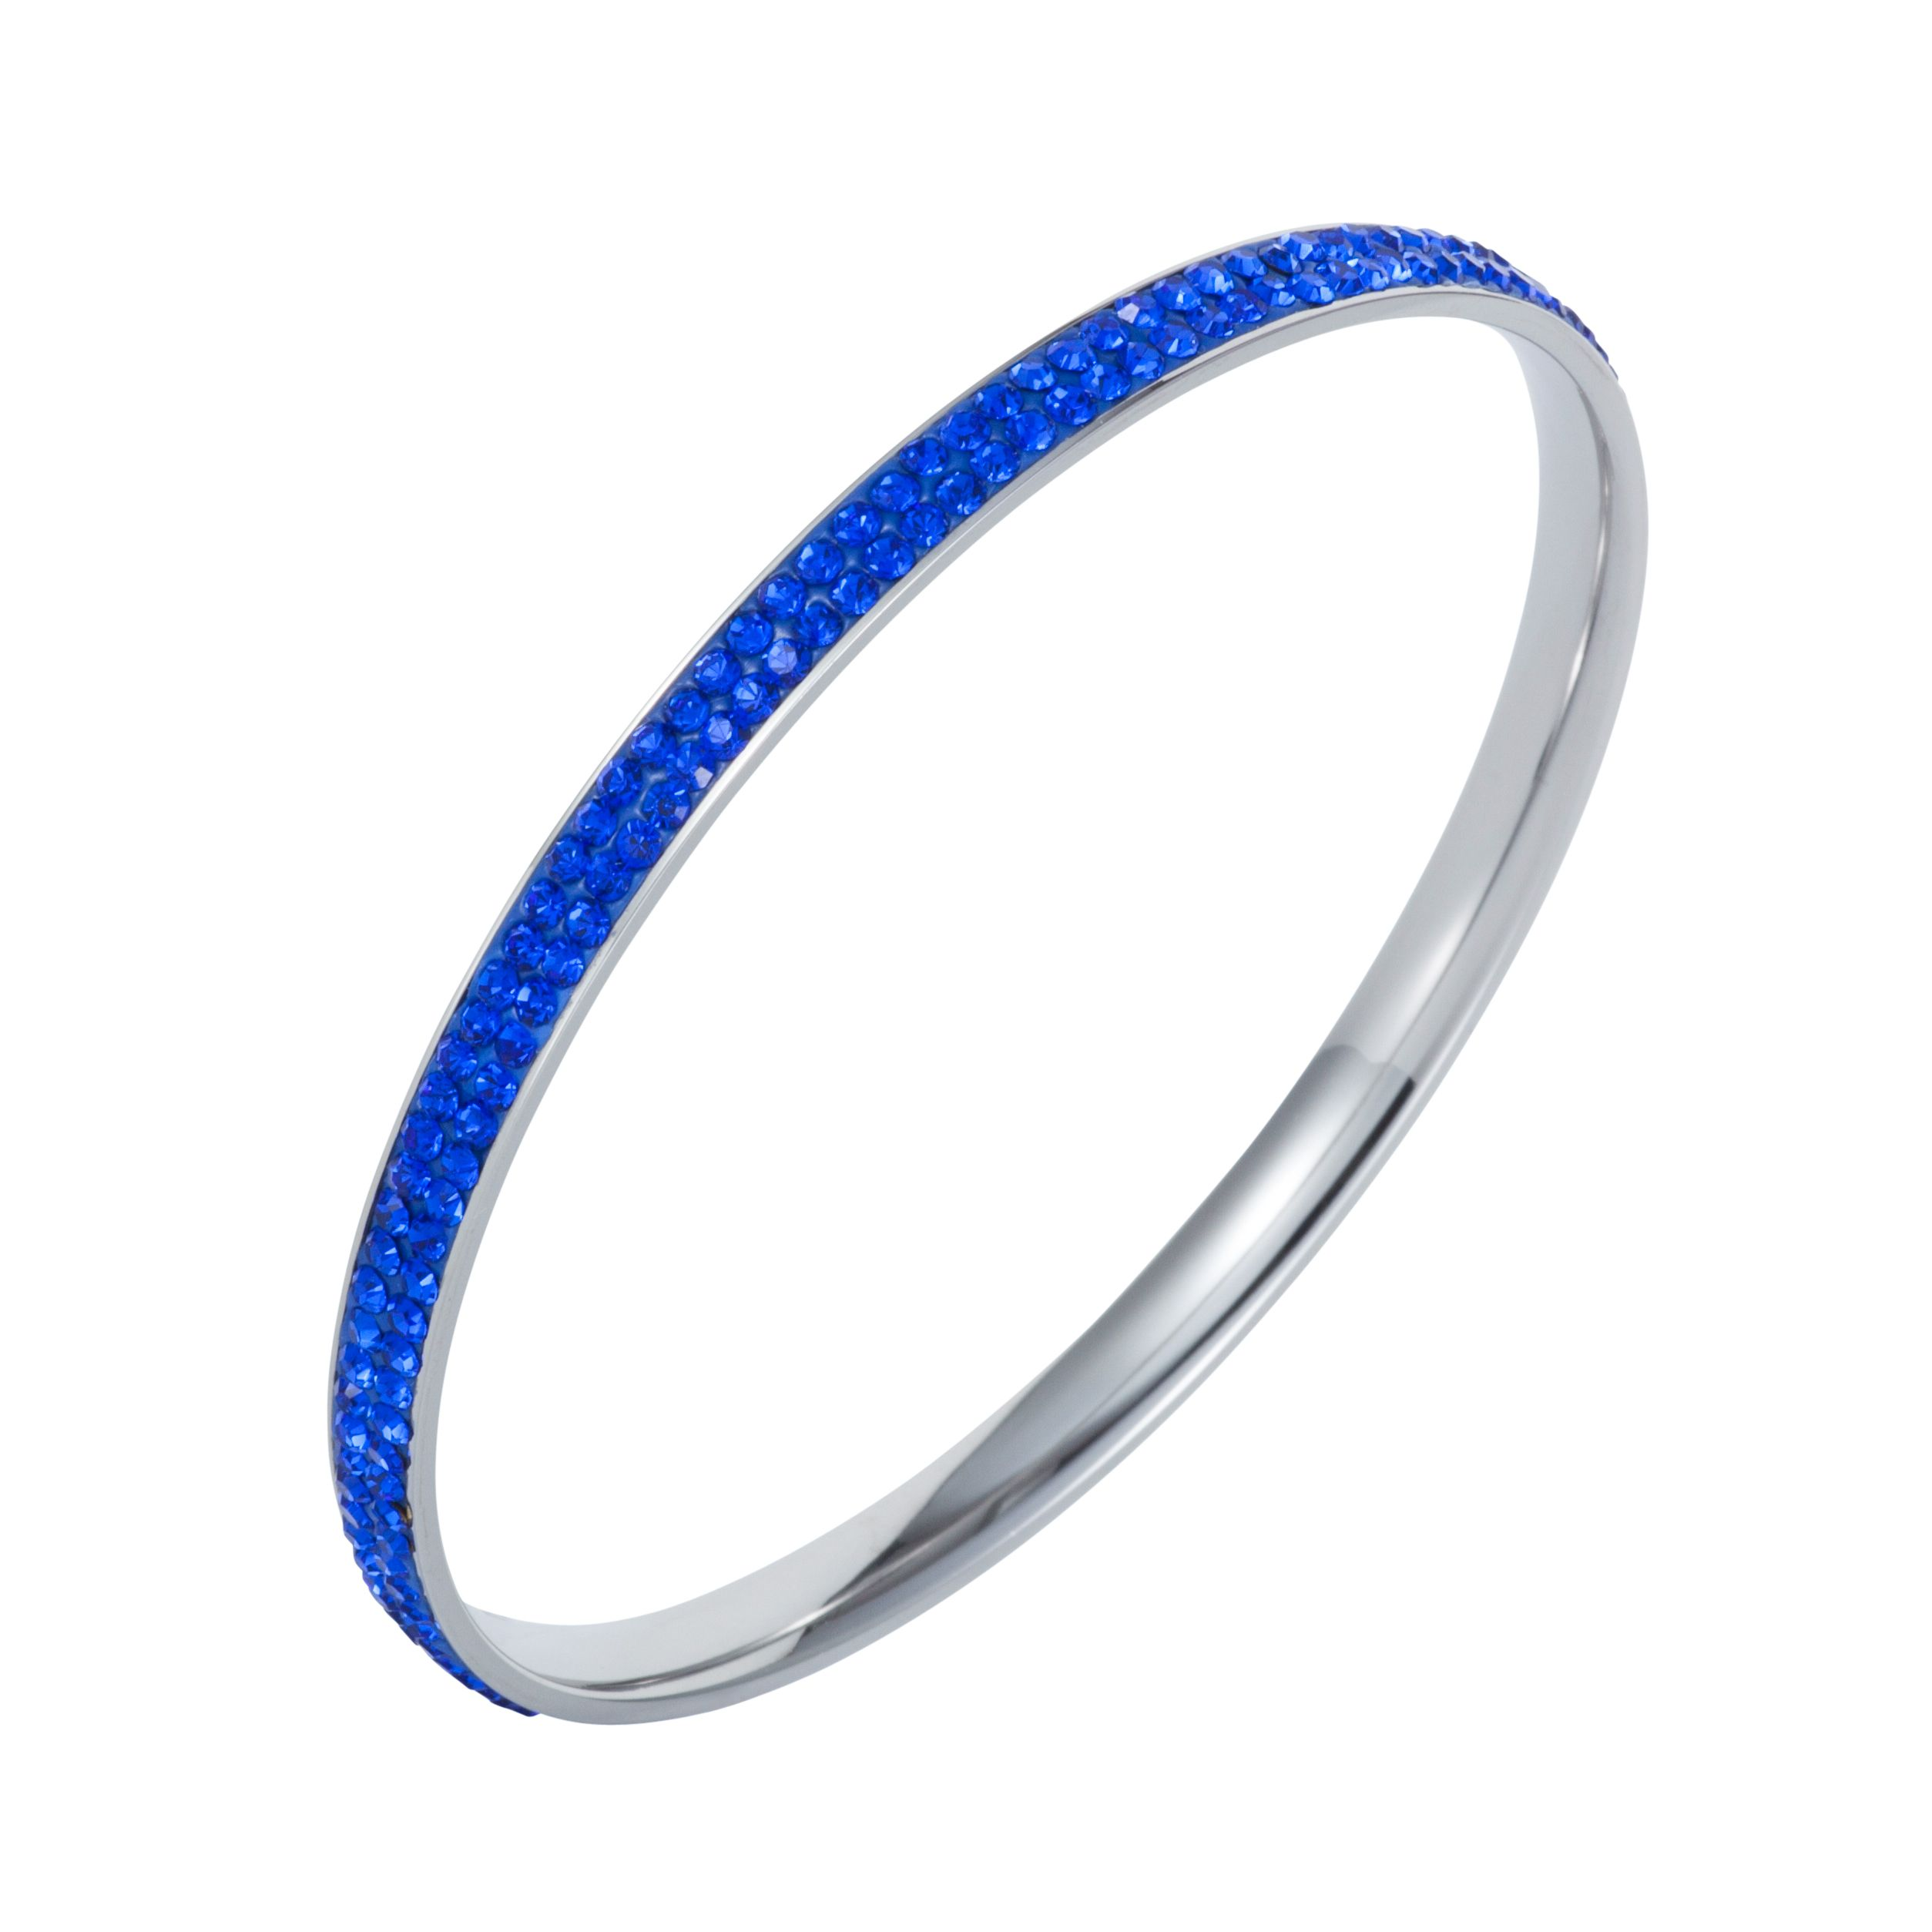 Stainless steel cubic zirconia sapphire bangle